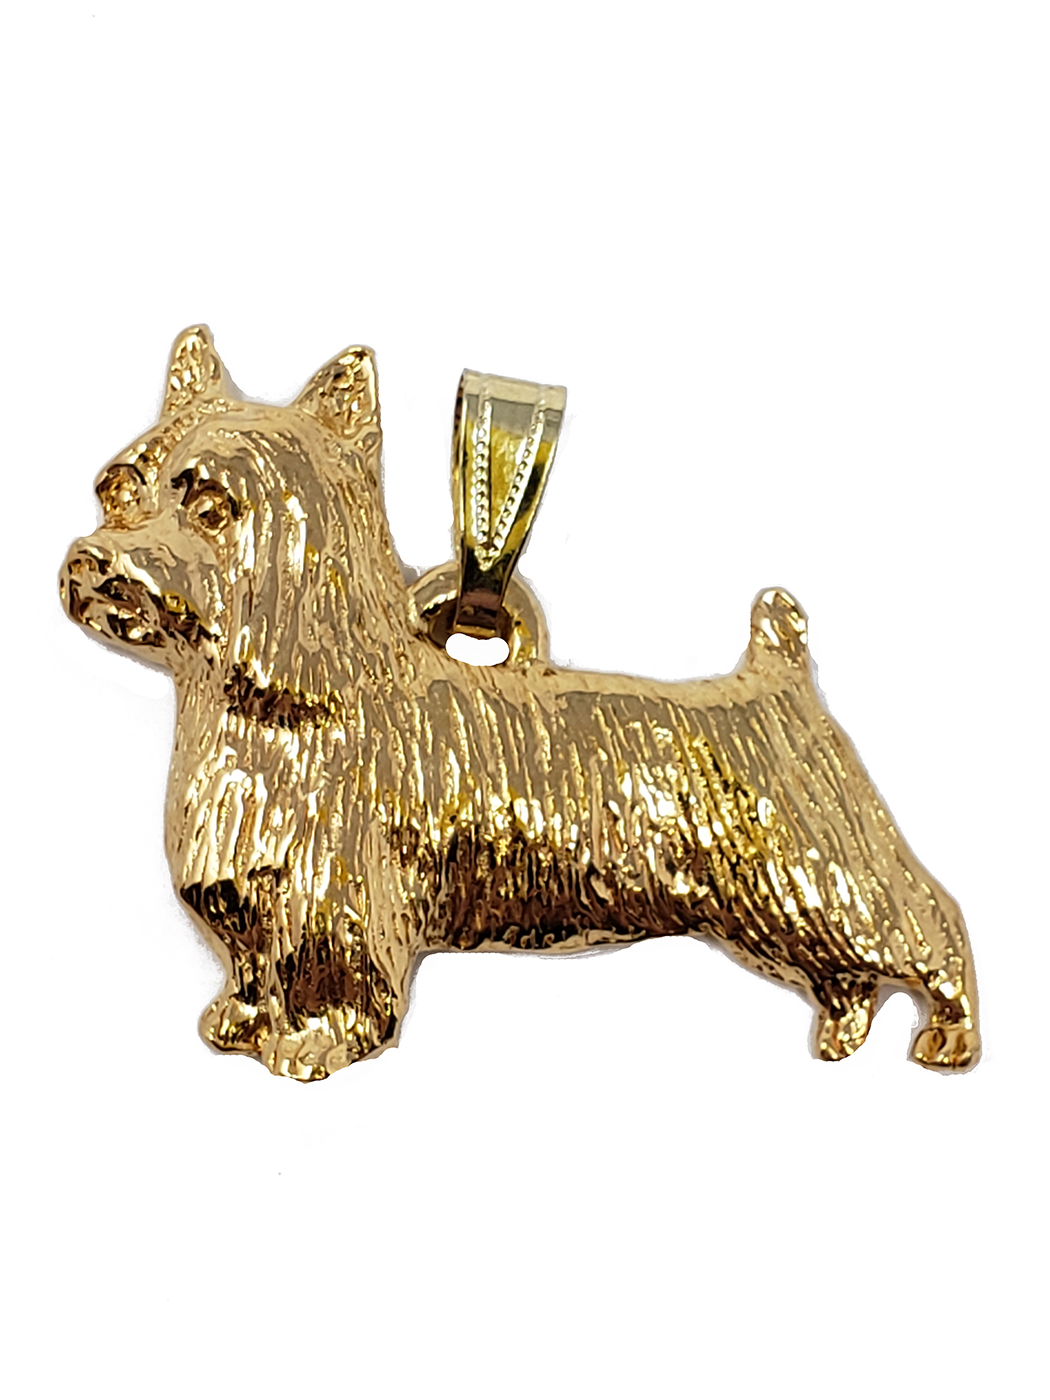 Silky Terrier 24K Gold Plated Pendant